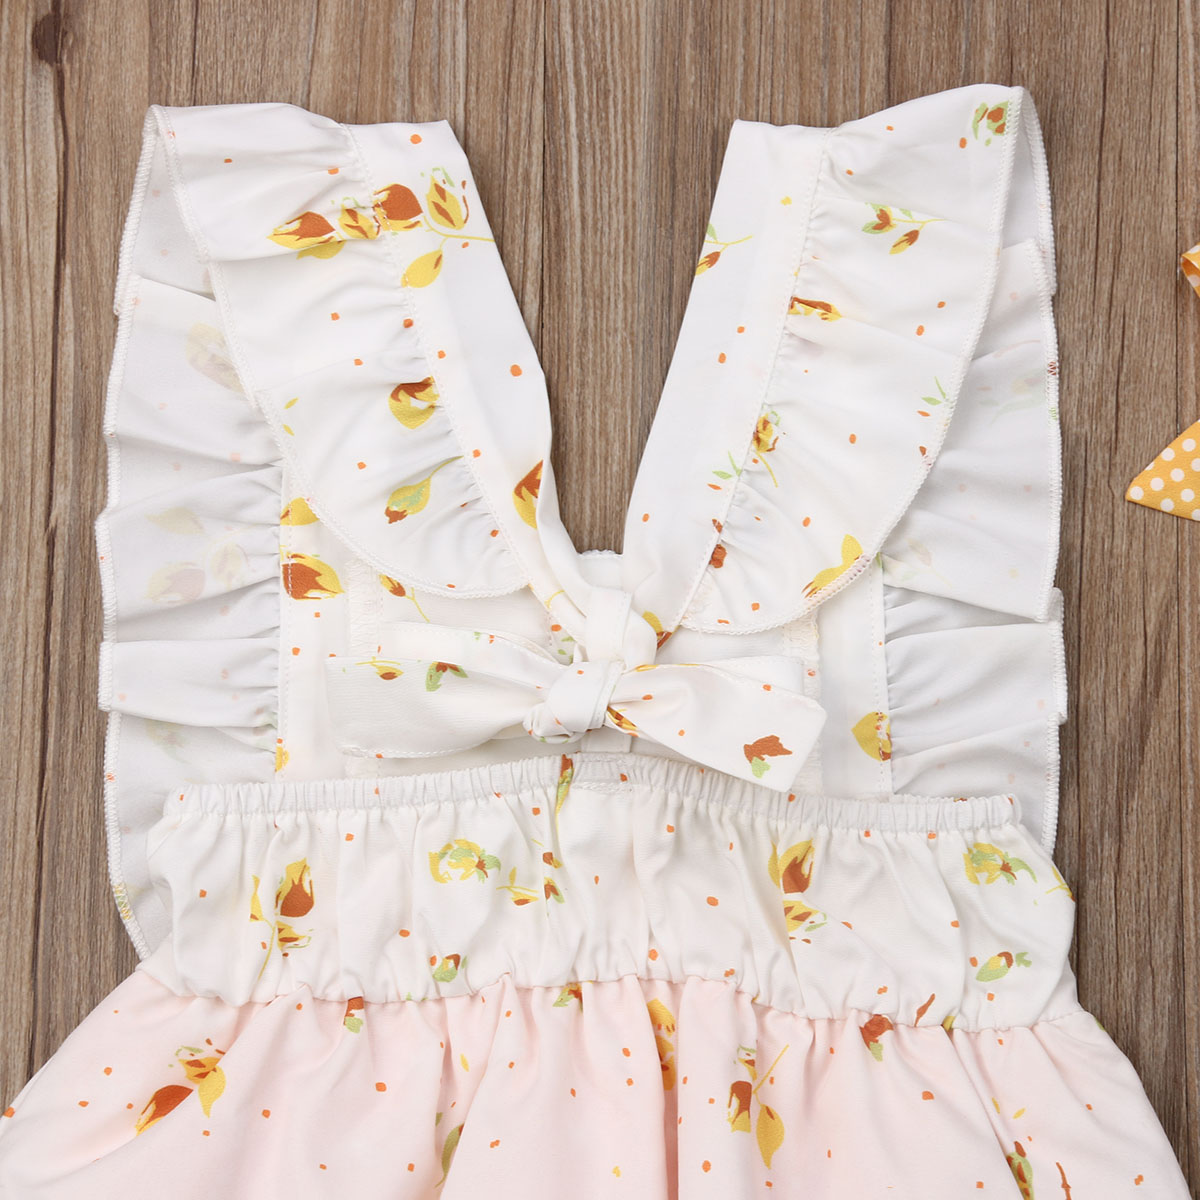 0 24M Newborn Baby Girls Flower Rompers Cute Lace Ruffles Jumpsuit Playsuit Floral Sleeveless Baby Girl Costumes Summer Clothes in Rompers from Mother Kids